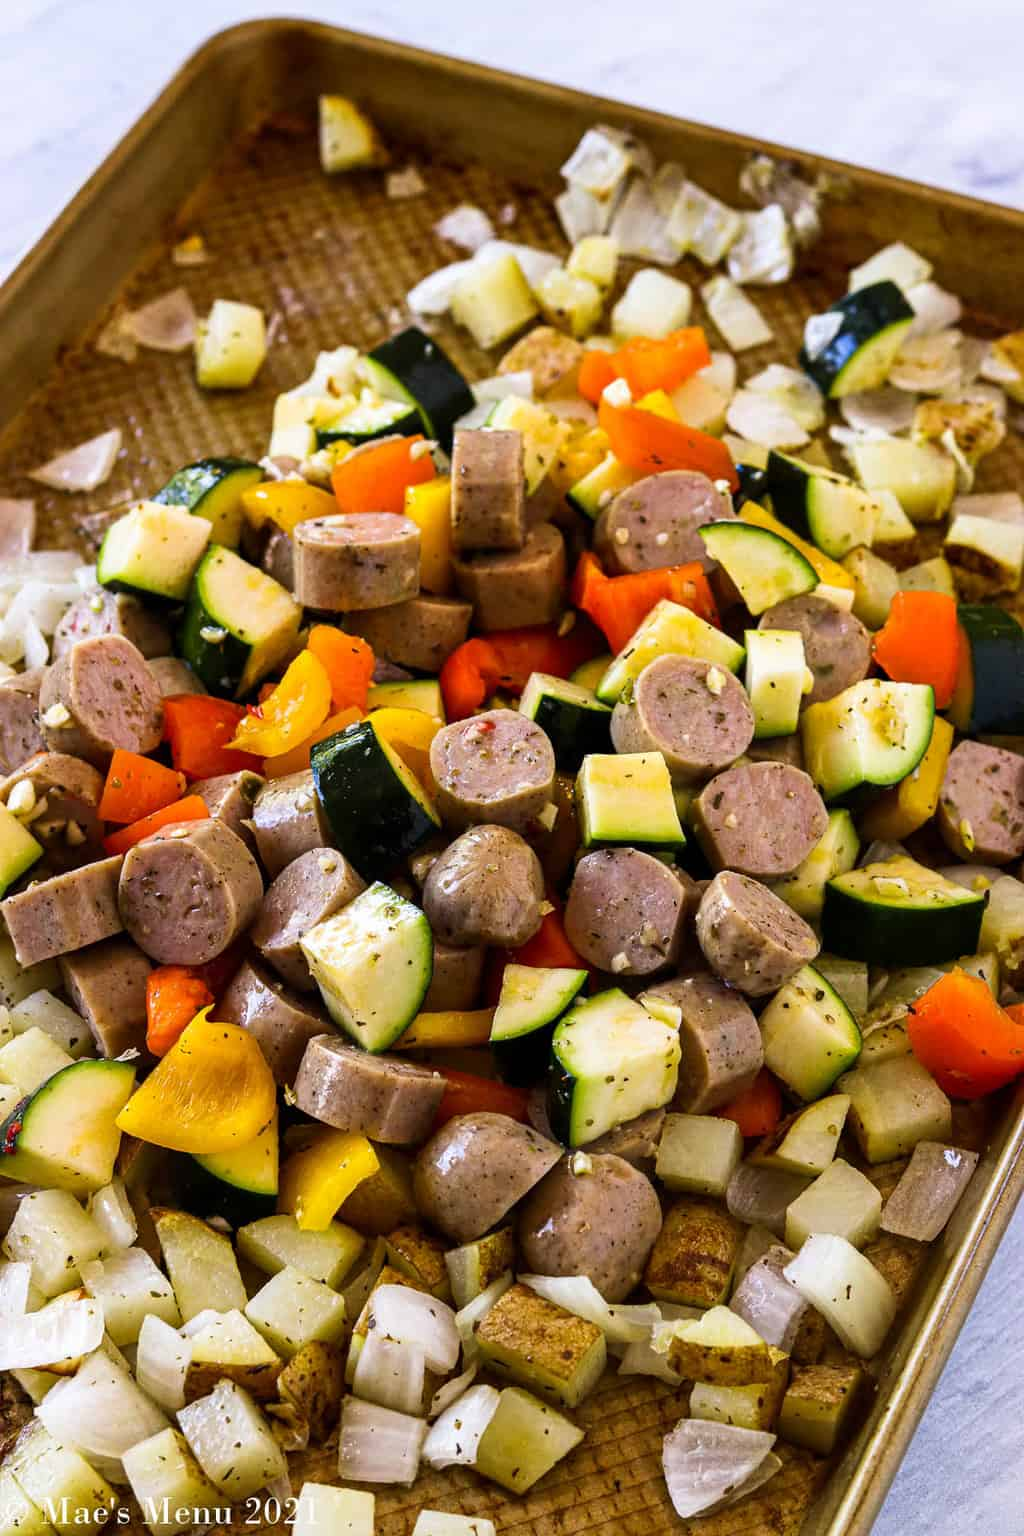 A side shot of a sheet pan full of potatoes, onions, veggies, and sausage with seasonings